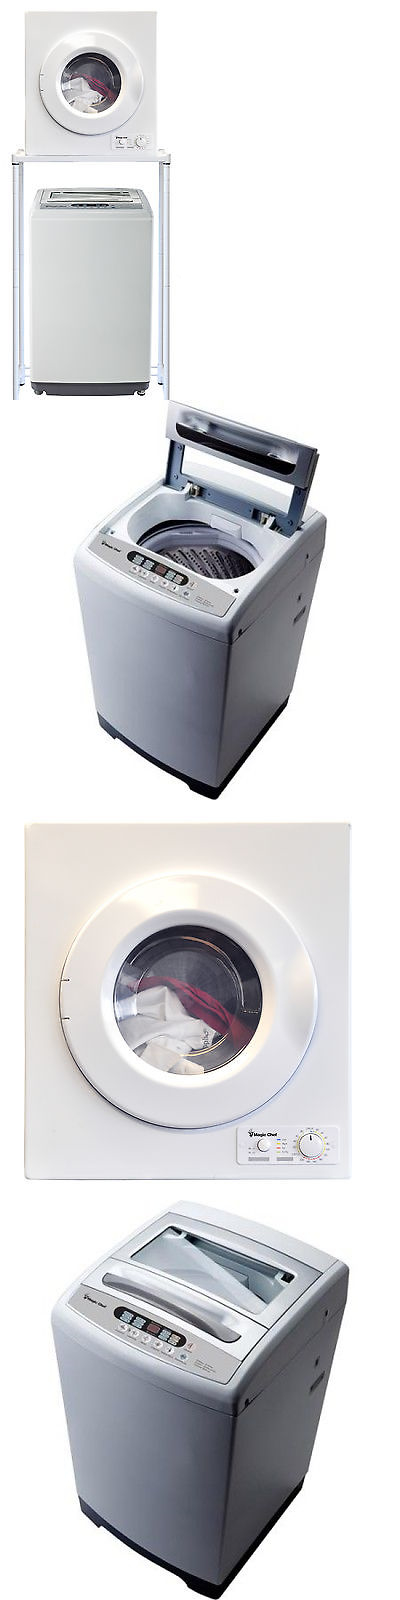 Washing Machines 71256 Magic Chef 1 6 Cu Ft Compact Portable Washer Dryer Combo Set 120 With Images Portable Washer And Dryer Washer Dryer Combo Portable Washing Machine